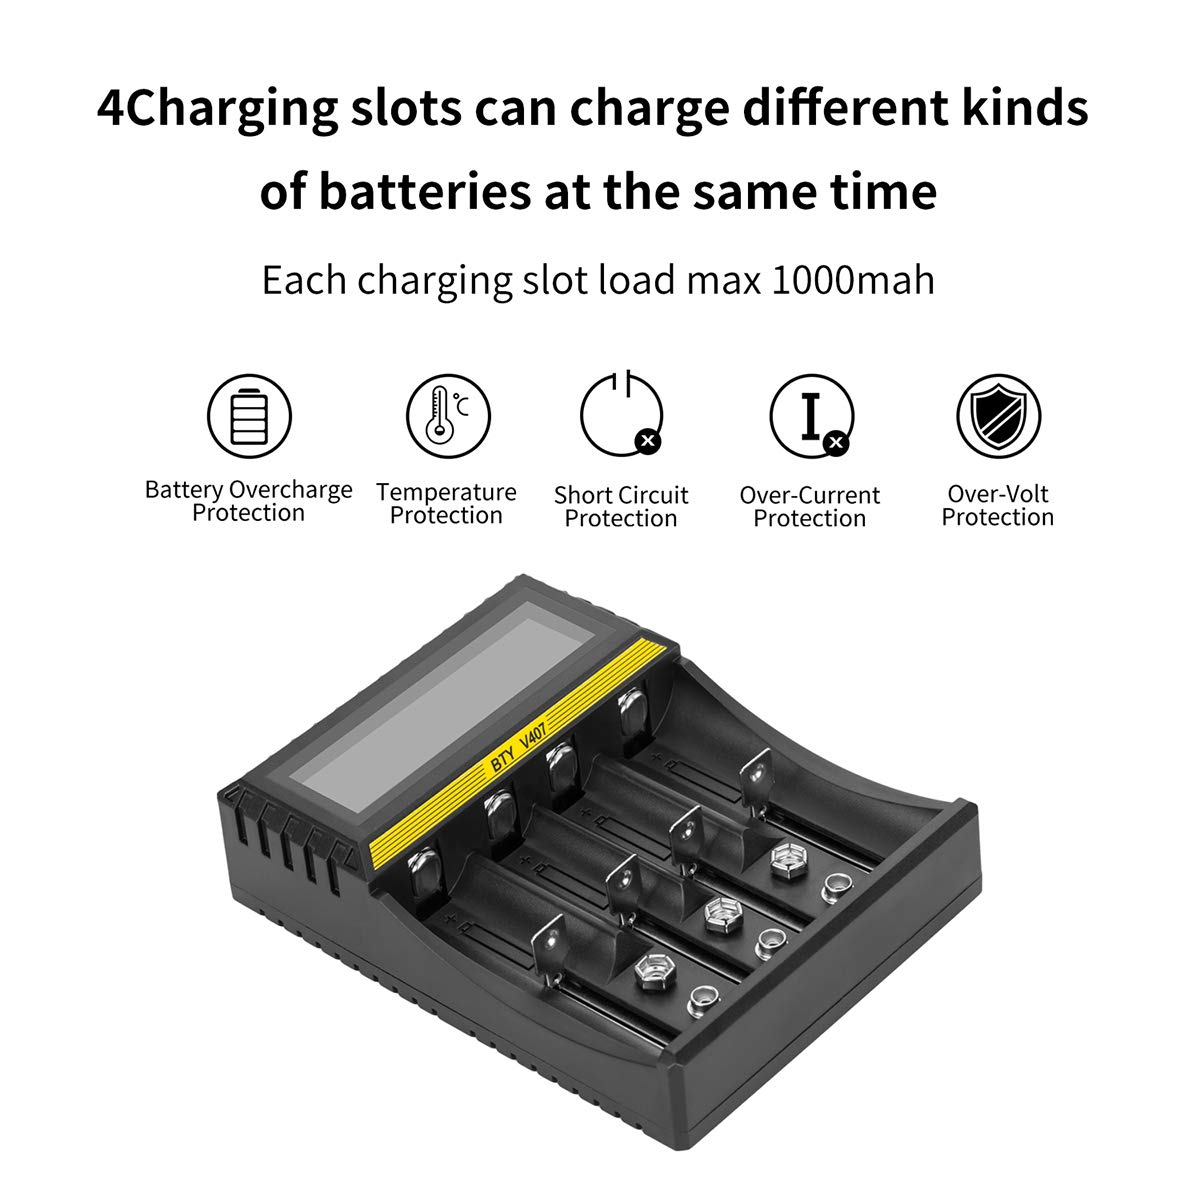 Amazon.com: Battery Charger 18650 LCD S4 Smart 9V Charger for Rechargeable Batteries Ni-MH Ni-Cd 6F22 A AA AAA Li-ion 18650 26650 26500 22650 18490 17670 ...